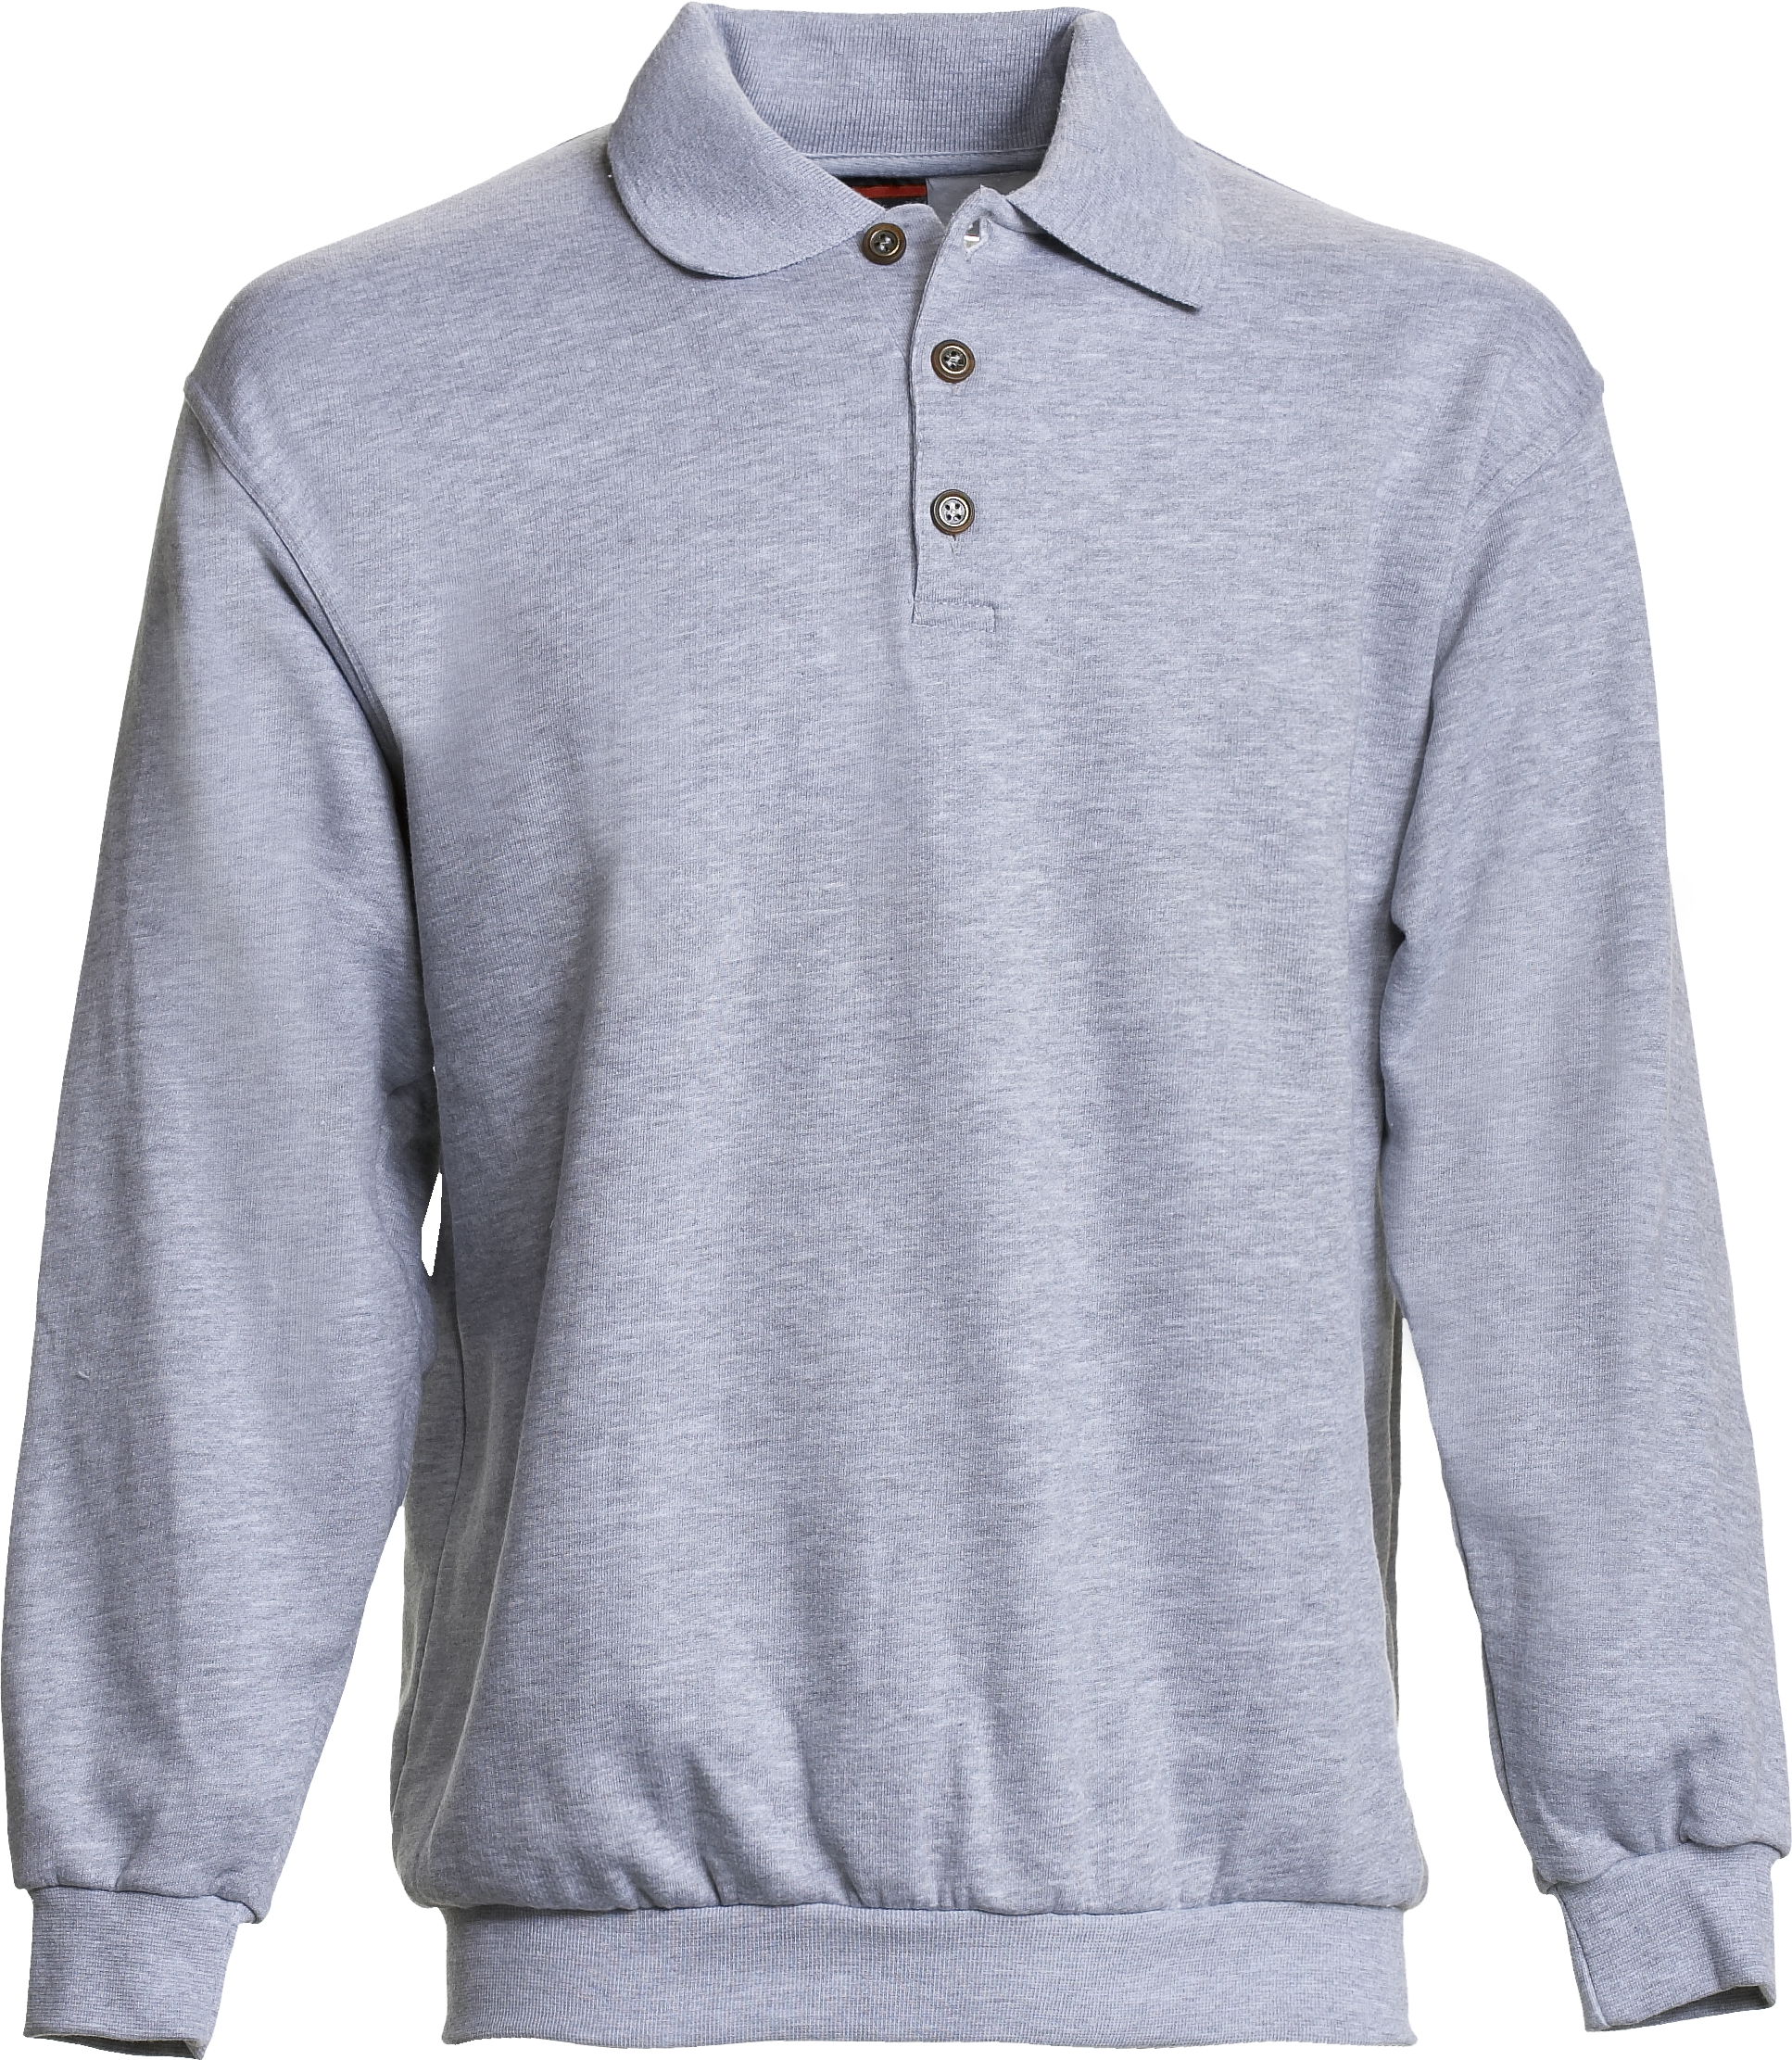 Sweatshirt, Basic (844001100)